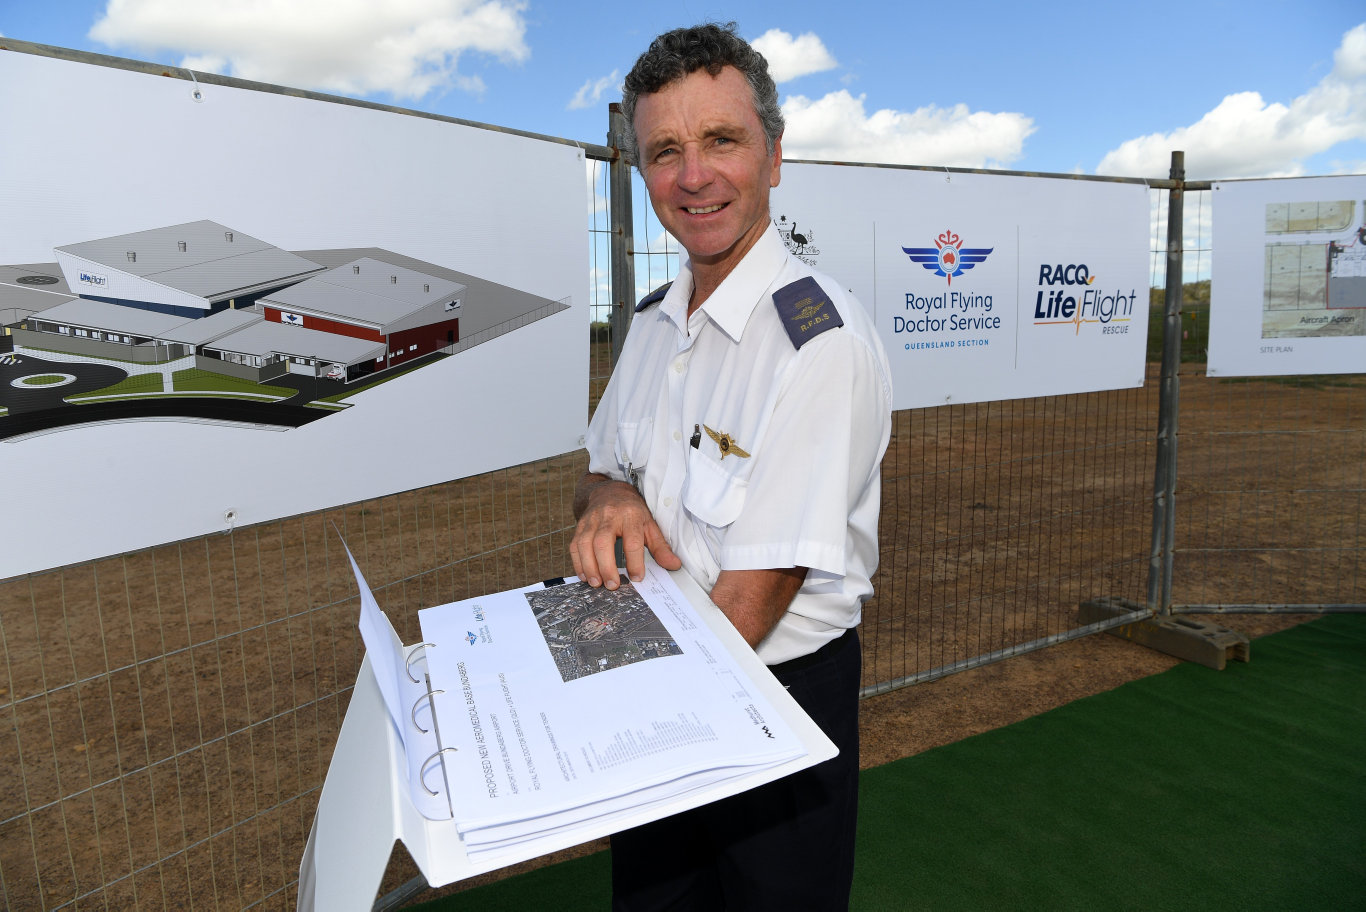 Royal Flying Doctors pilot Haydn Frisby studies the plans for the base.